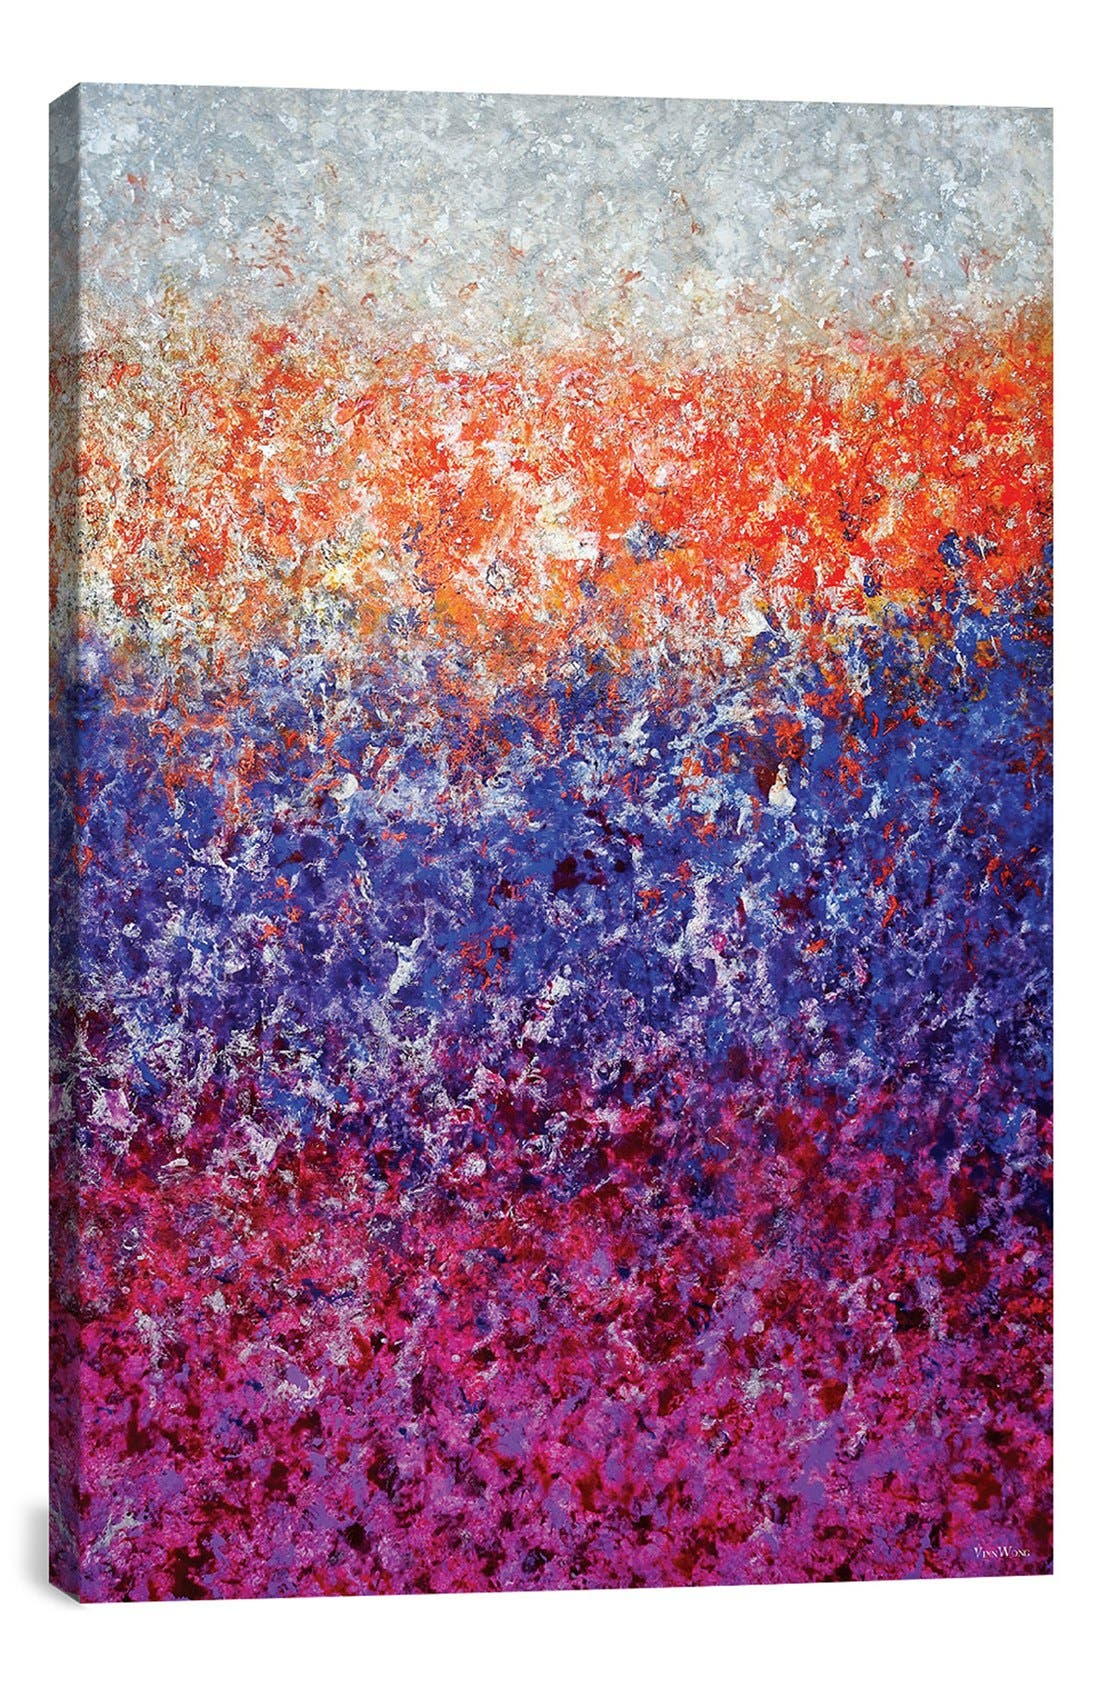 'Dying Light' Giclée Print Canvas Art,                             Main thumbnail 1, color,                             500